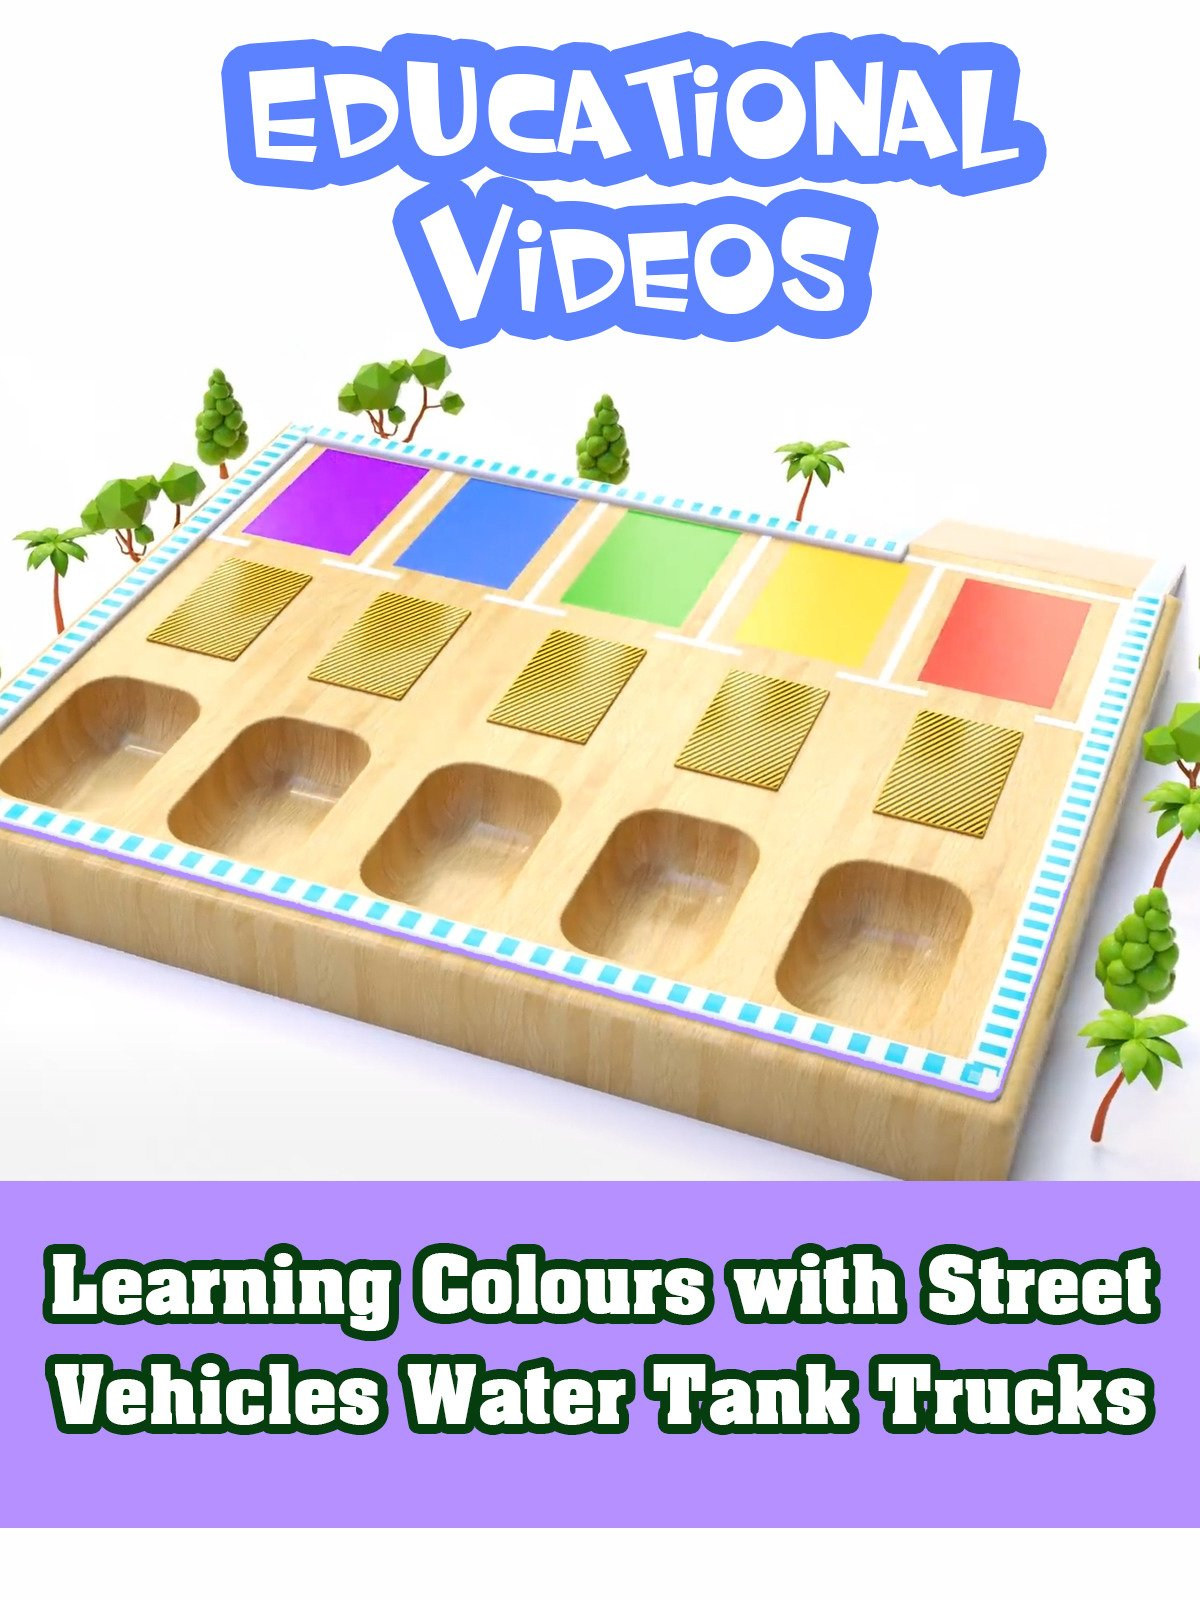 Learning Colours with Street Vehicles Water Tank Trucks